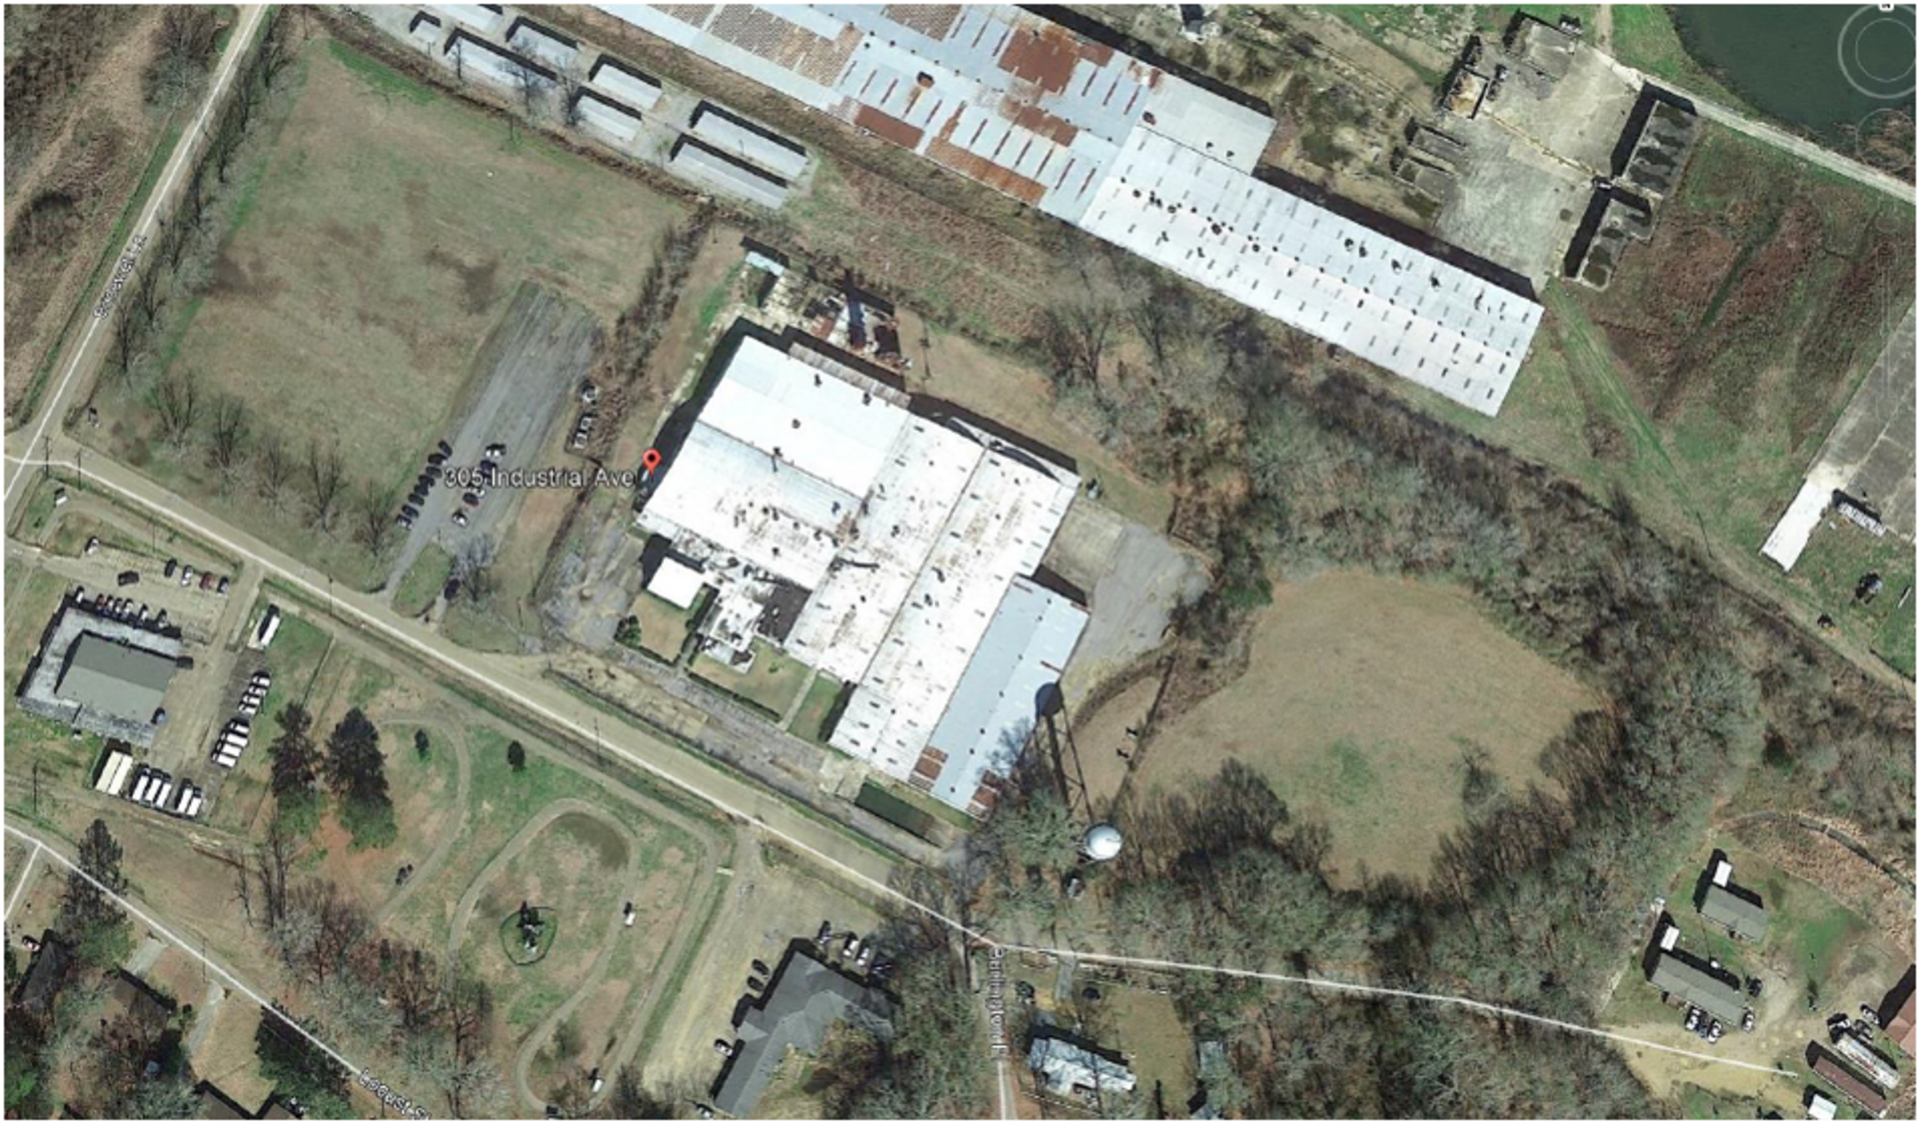 Lot 290 - Real Estate 113,725 square foot Manufacturing and Distribution Facility